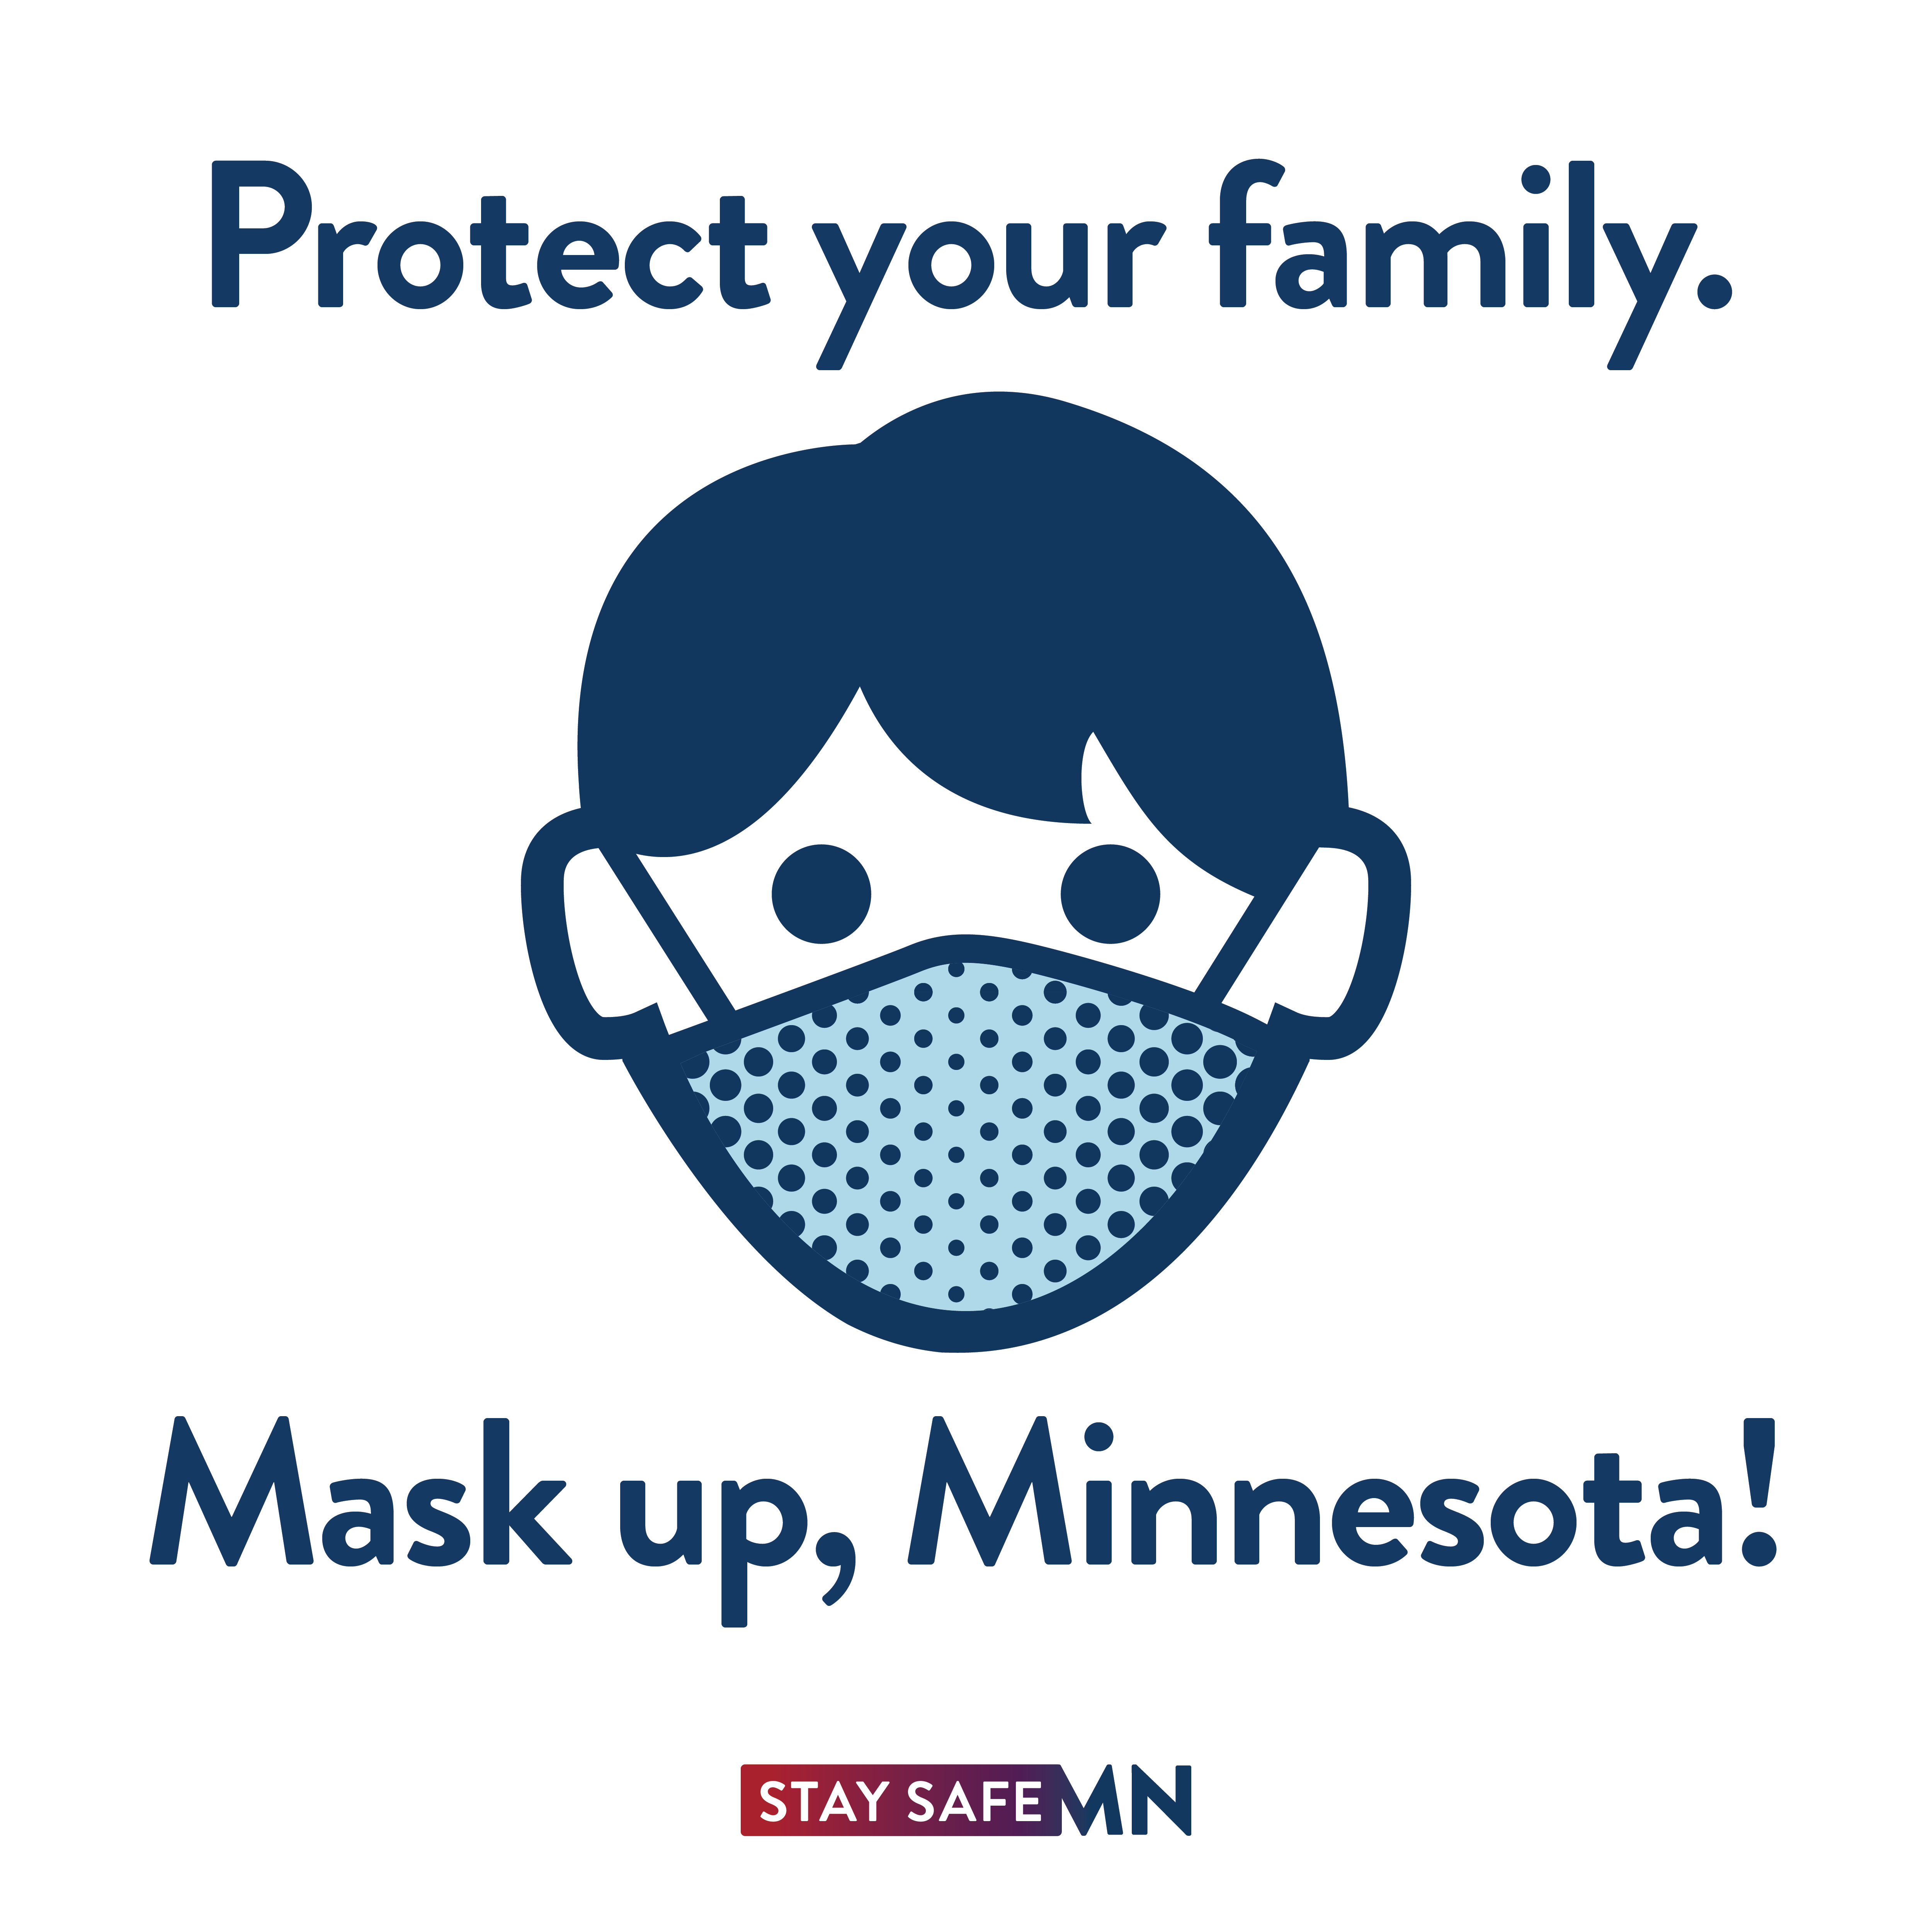 Protect your family. Mask, up Minnesota!